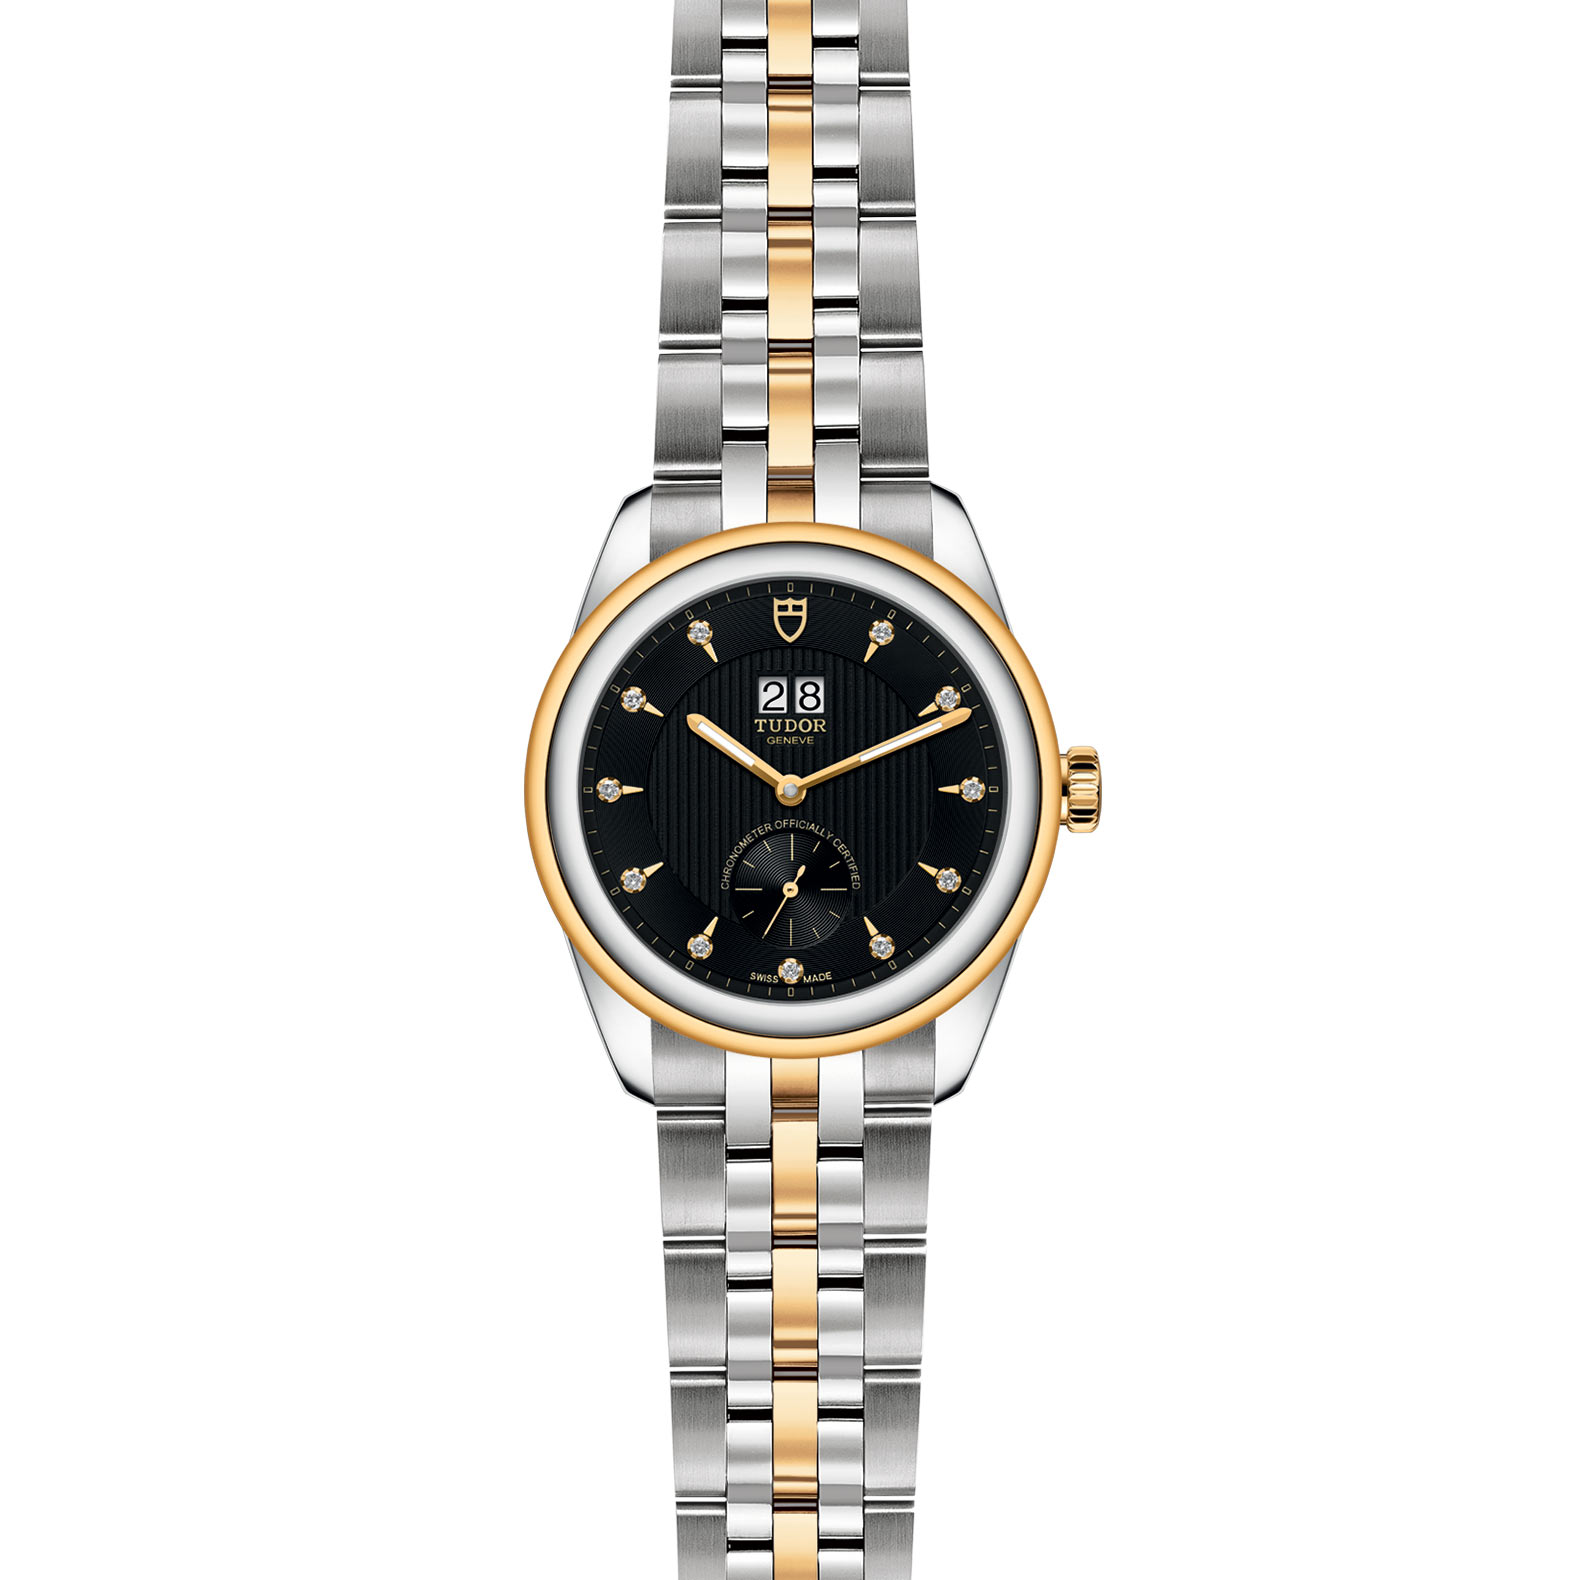 TUDOR Glamour Double Date M57103 0004 Frontfacing